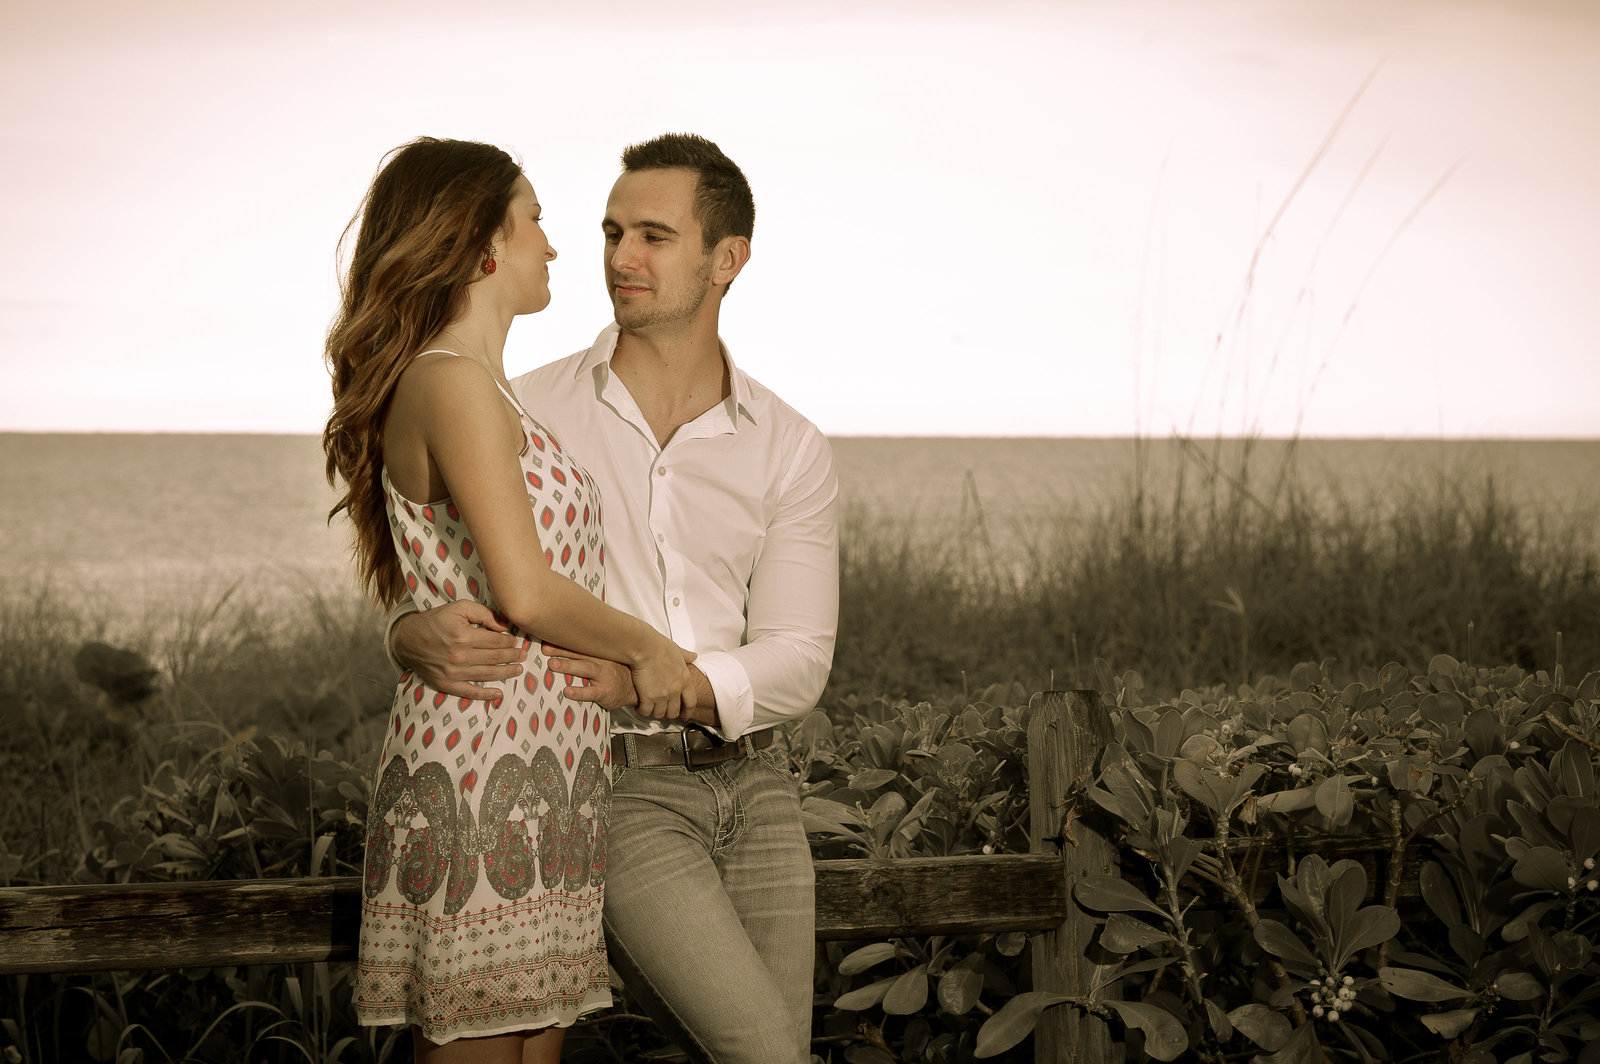 Reel Treasures Productions Engagement Shoot in Naples FL.